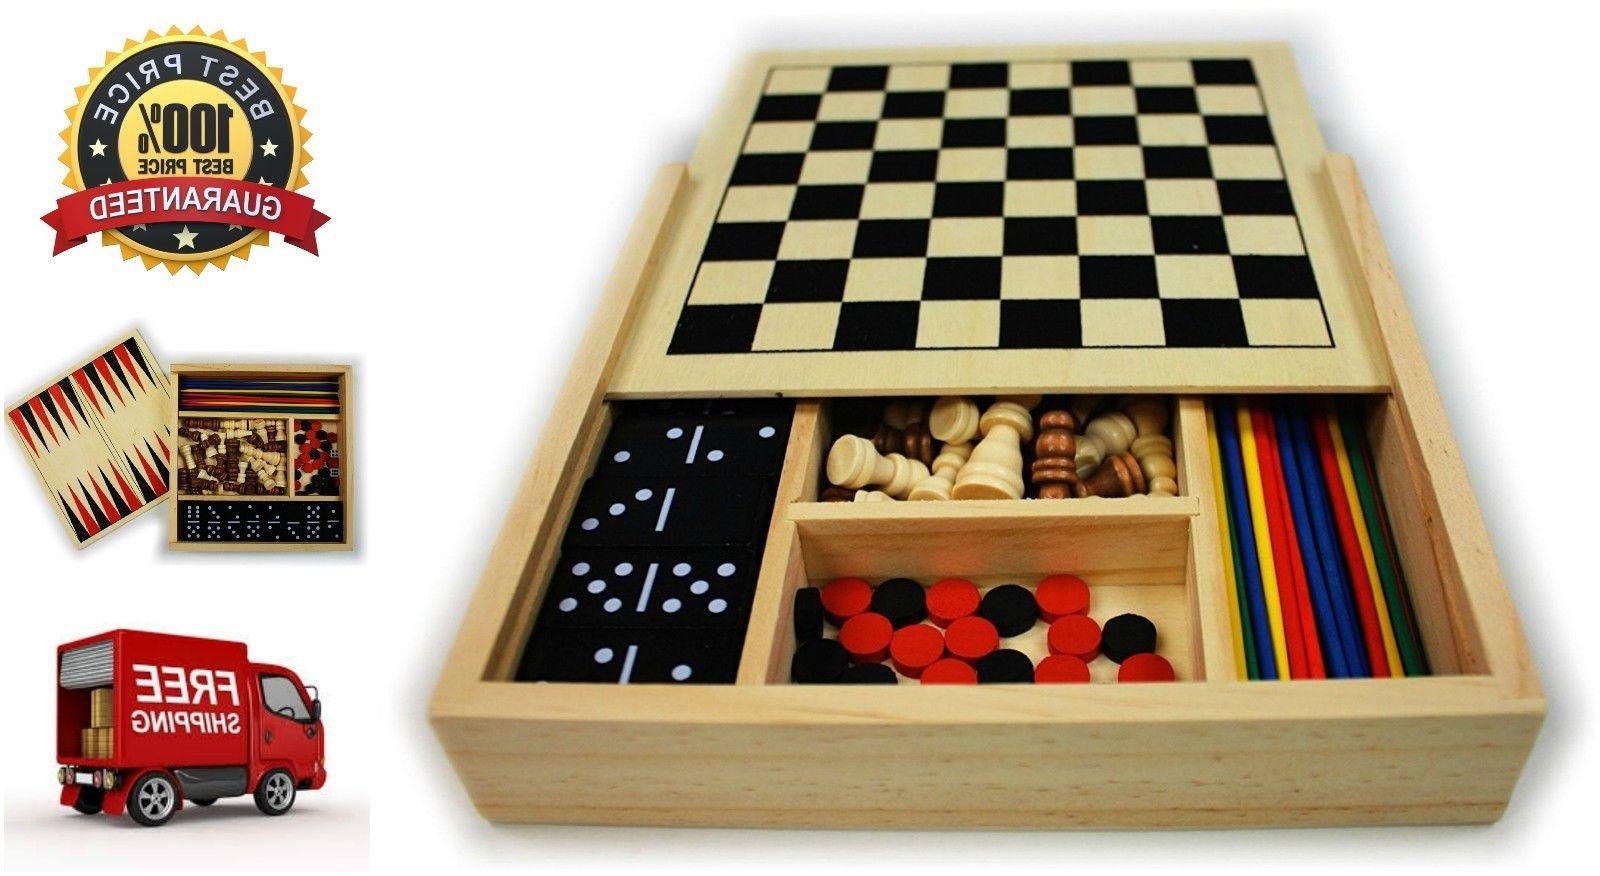 5-in-1 Wooden Board Game Set Chess Checkers Dominoes Pick Up